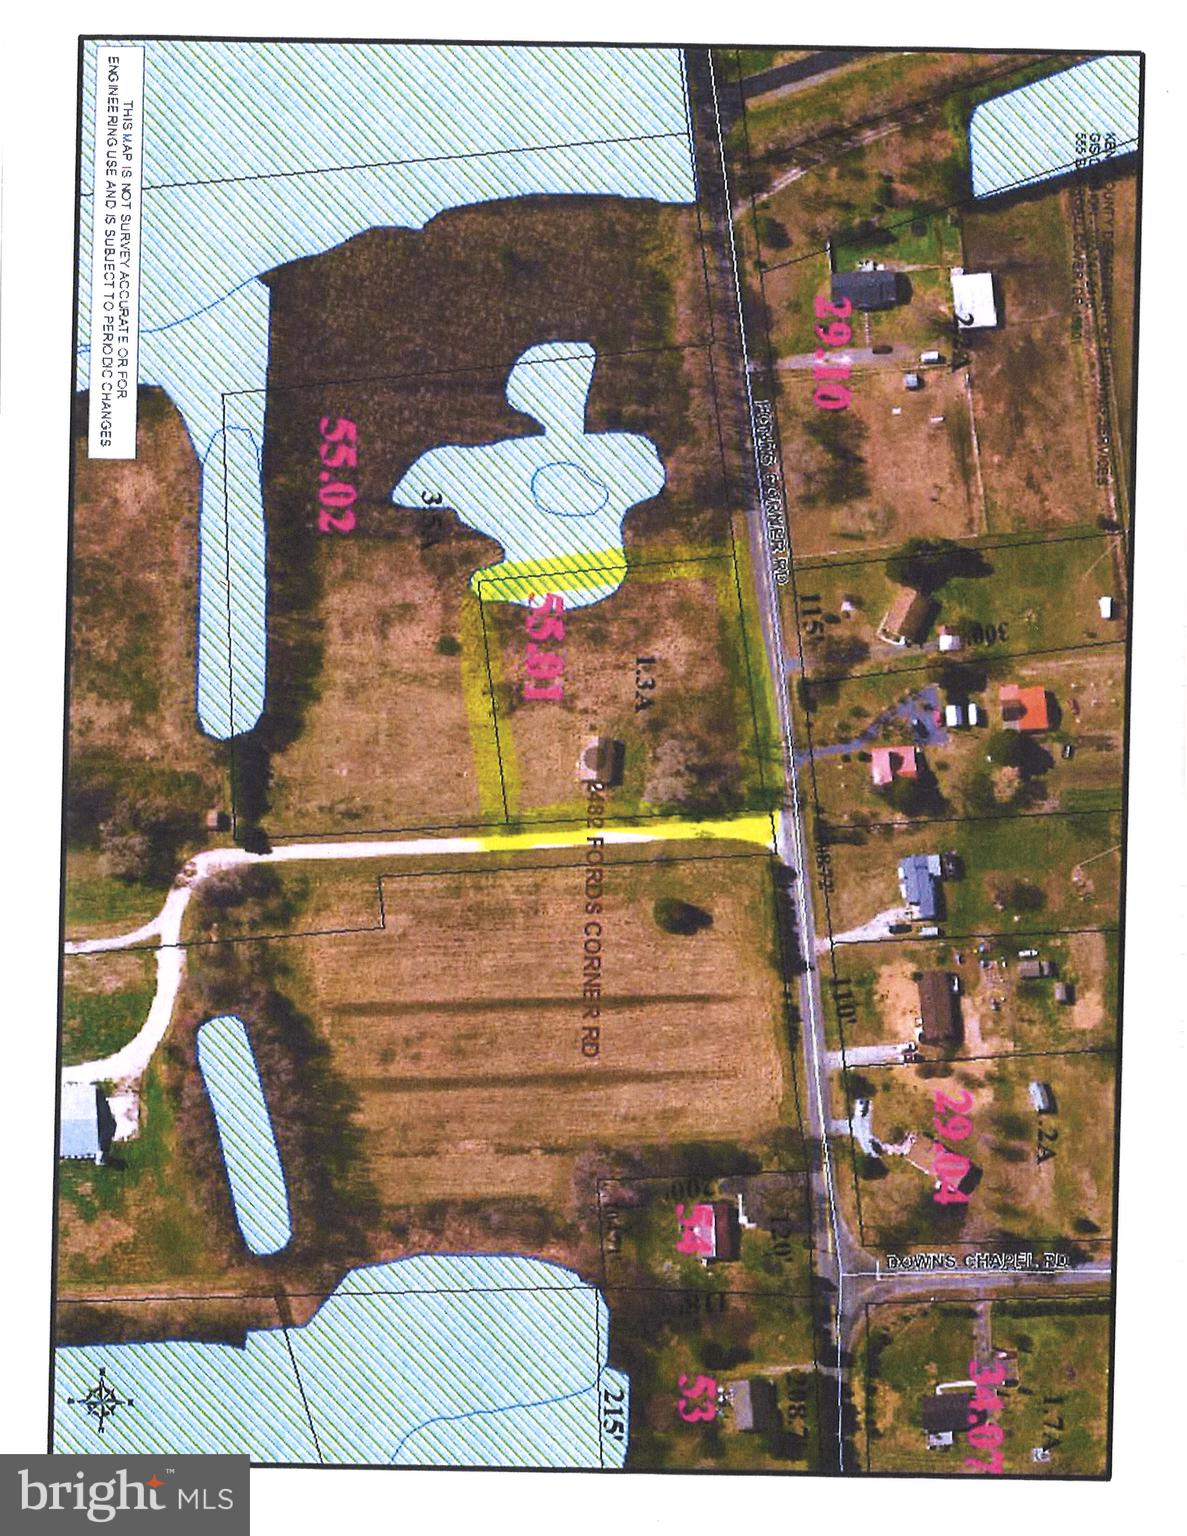 1.3 acres with an unfinished home, out in the country.  Perfect if you are interested in becoming a flipper or make this your dream home.  Site work needs updating.  Previous site work indicated LPP.  Lot is in the process of being cleared, home has no value.